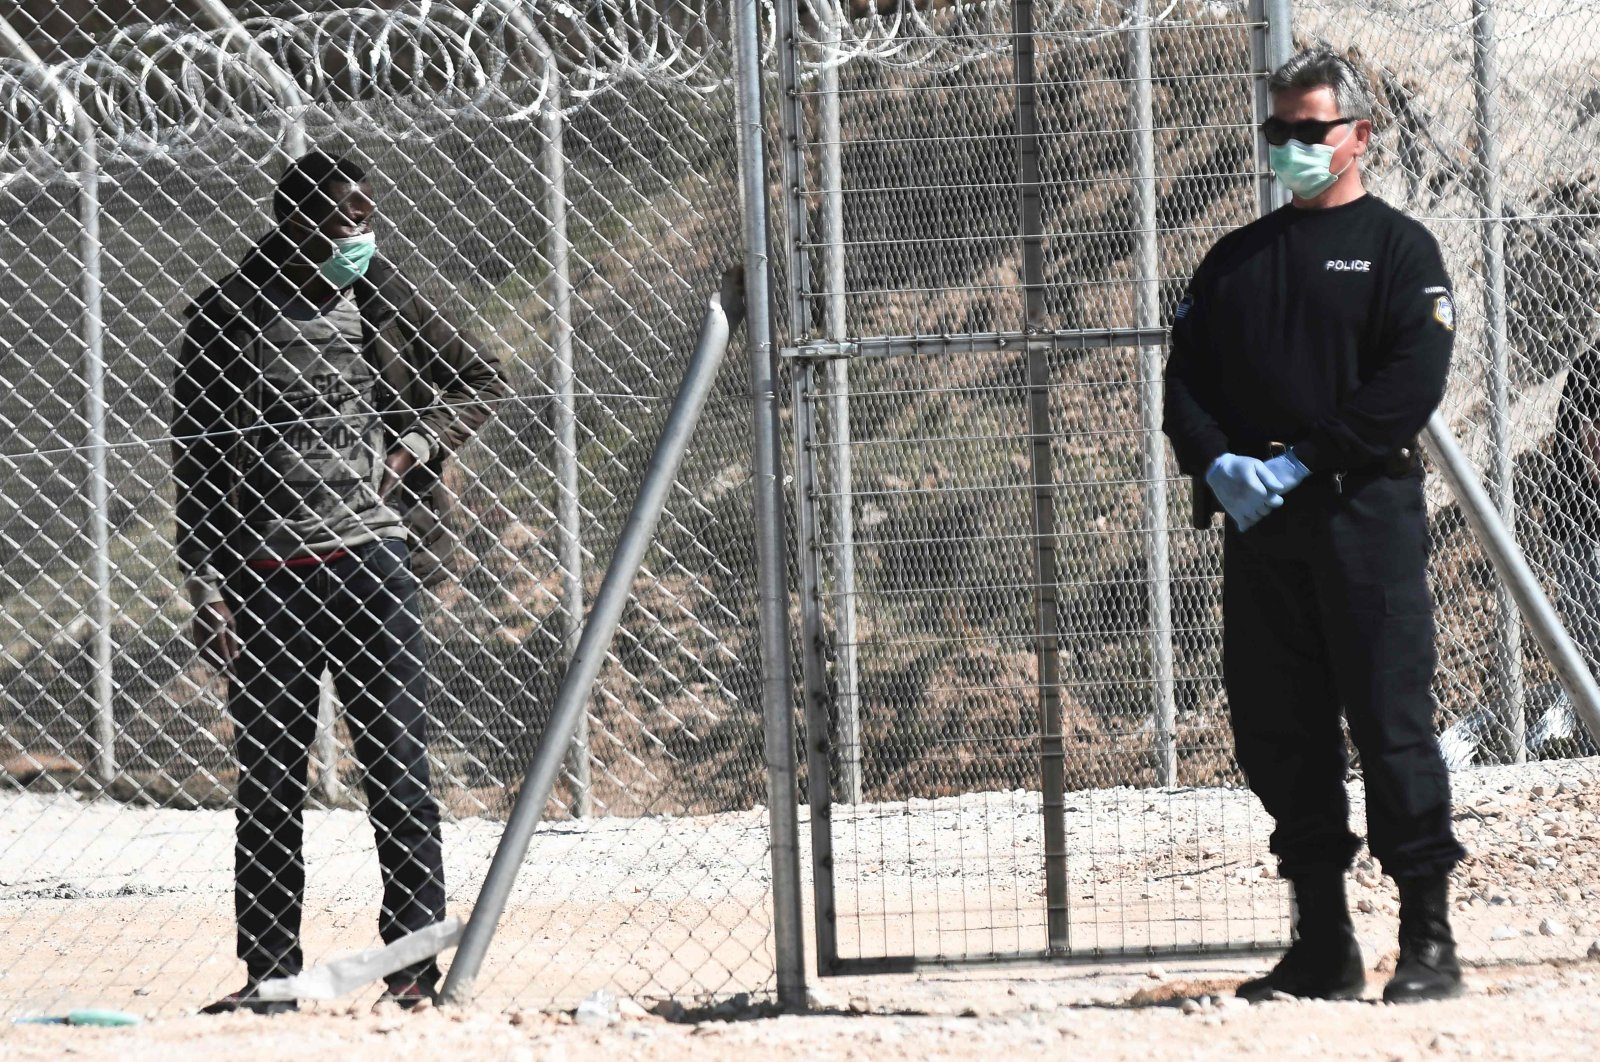 A migrant looks at a Greek police officer at a closed camp at Kleidi near Promahonas, northern Greece, March 21, 2020. (AFP Photo)